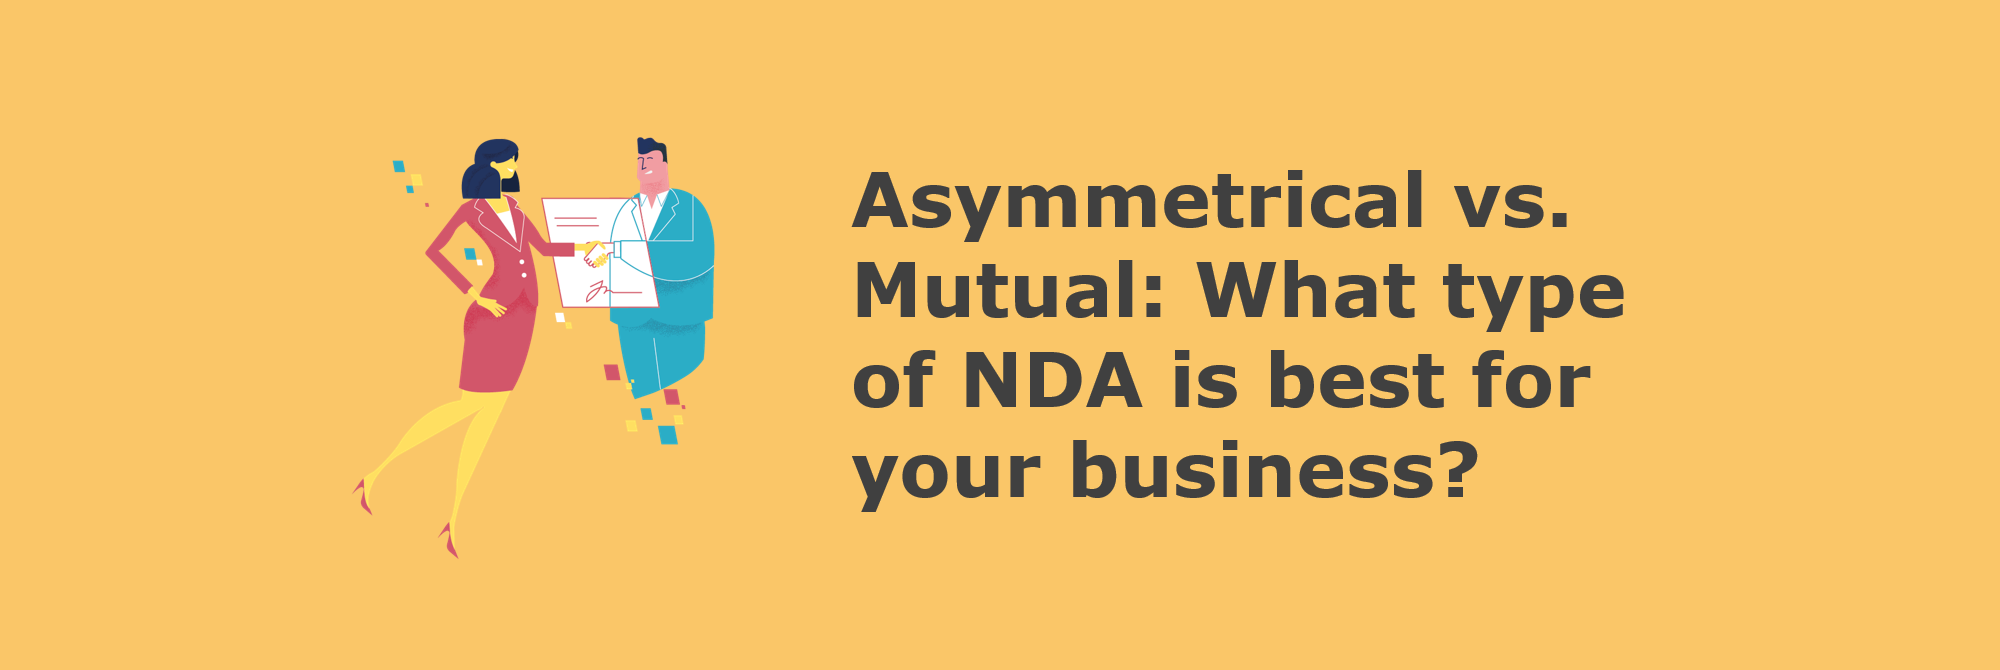 header - what type of nda is best for your business